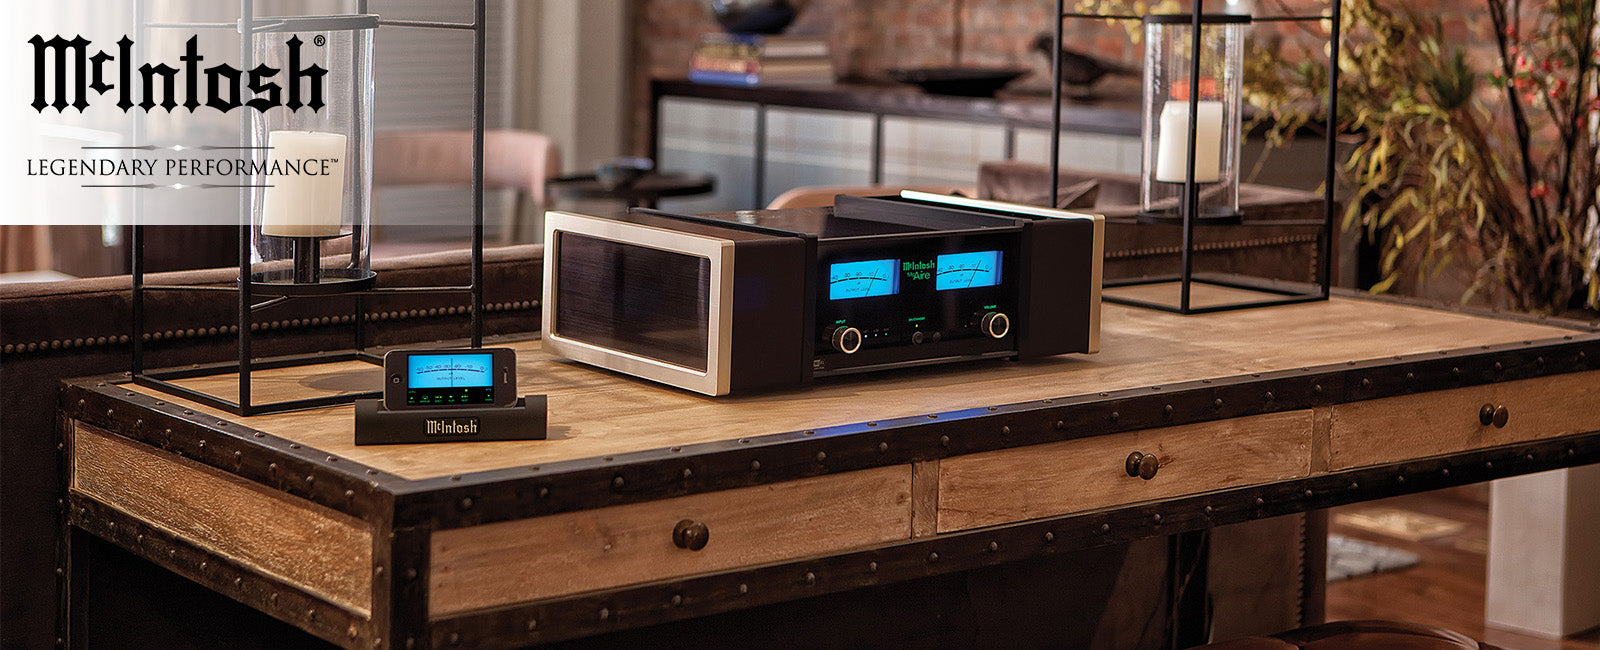 McIntosh Audio: Turntables, Receivers,  Amps, Speakers